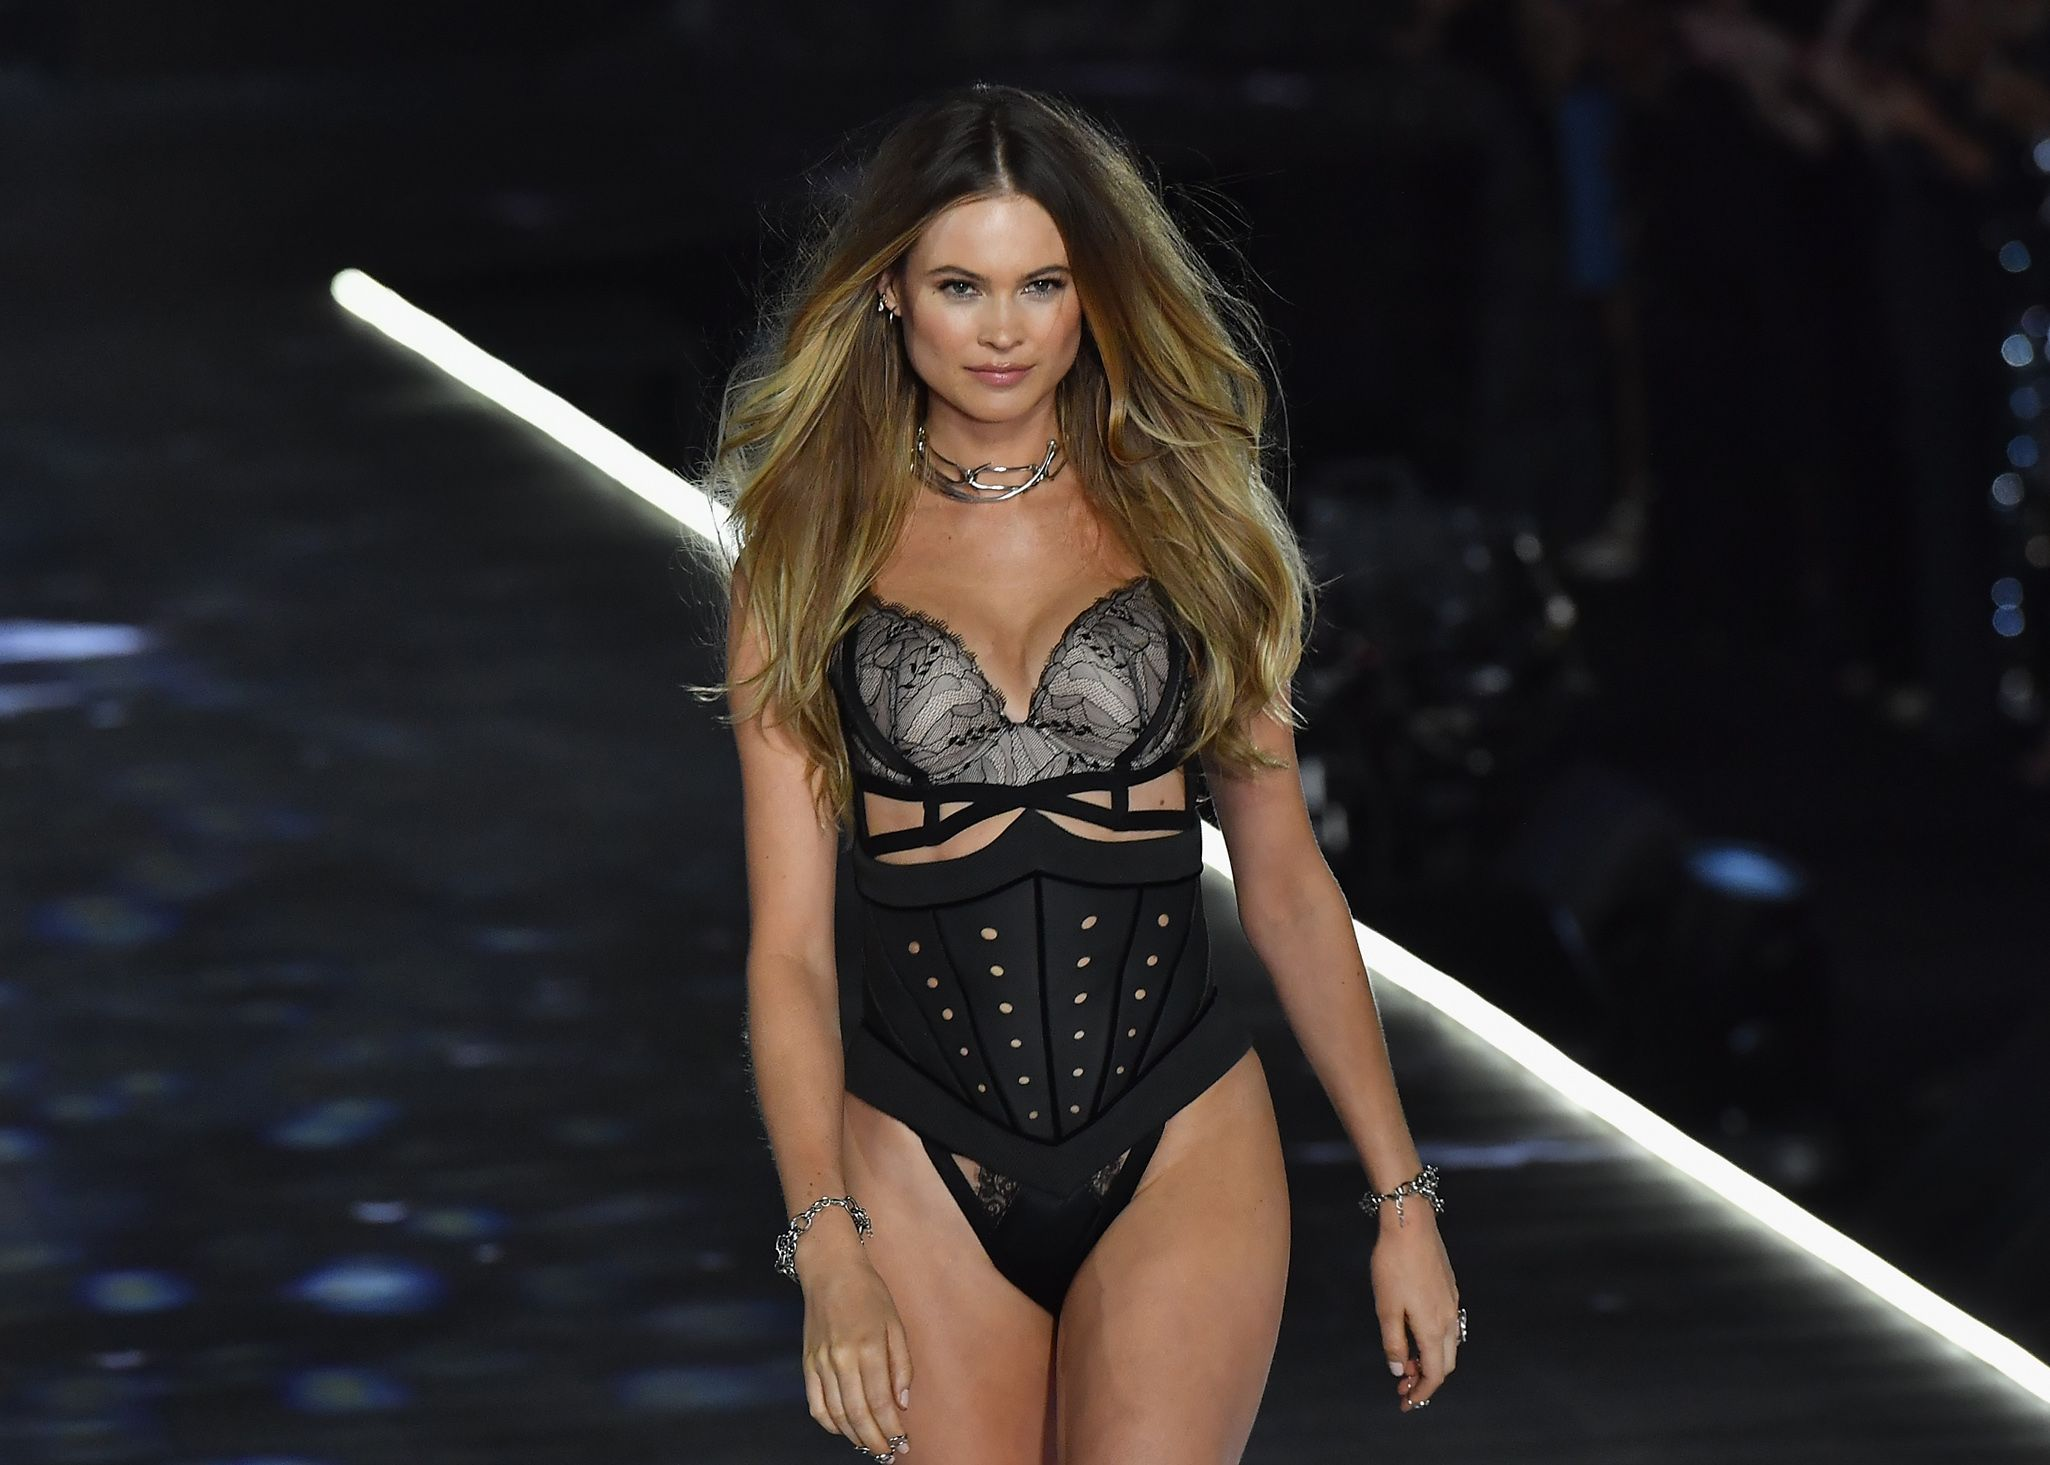 Behati Prinsloo nude (81 pics), hot Topless, Instagram, legs 2016